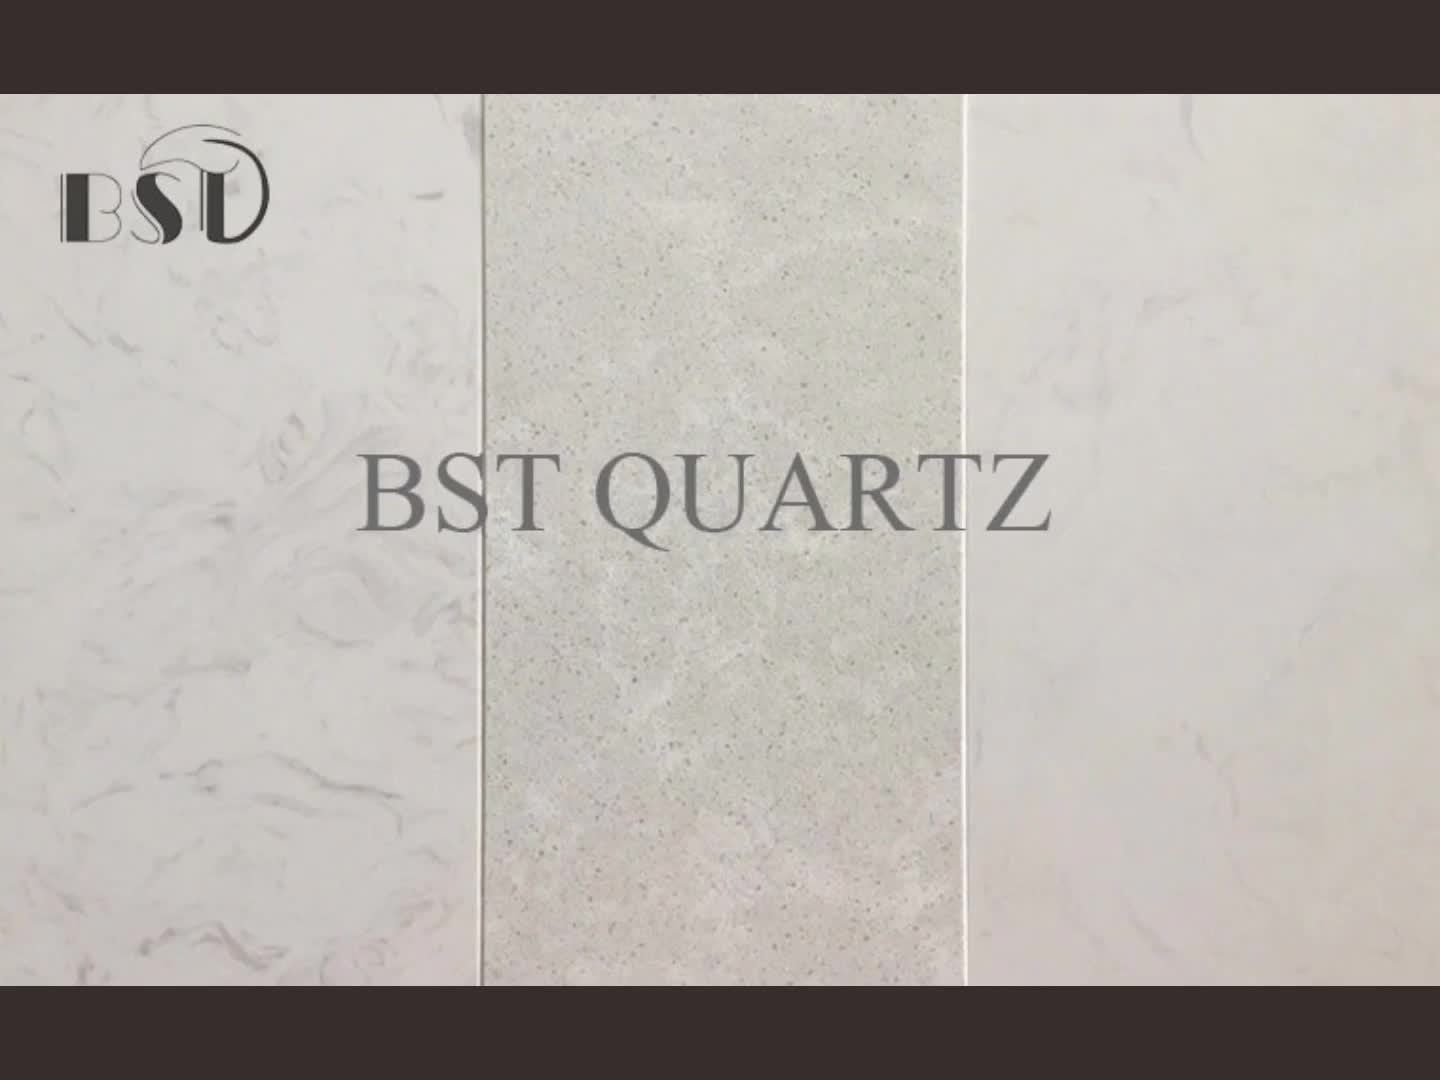 White Marble Like Quartz Engineering Stone